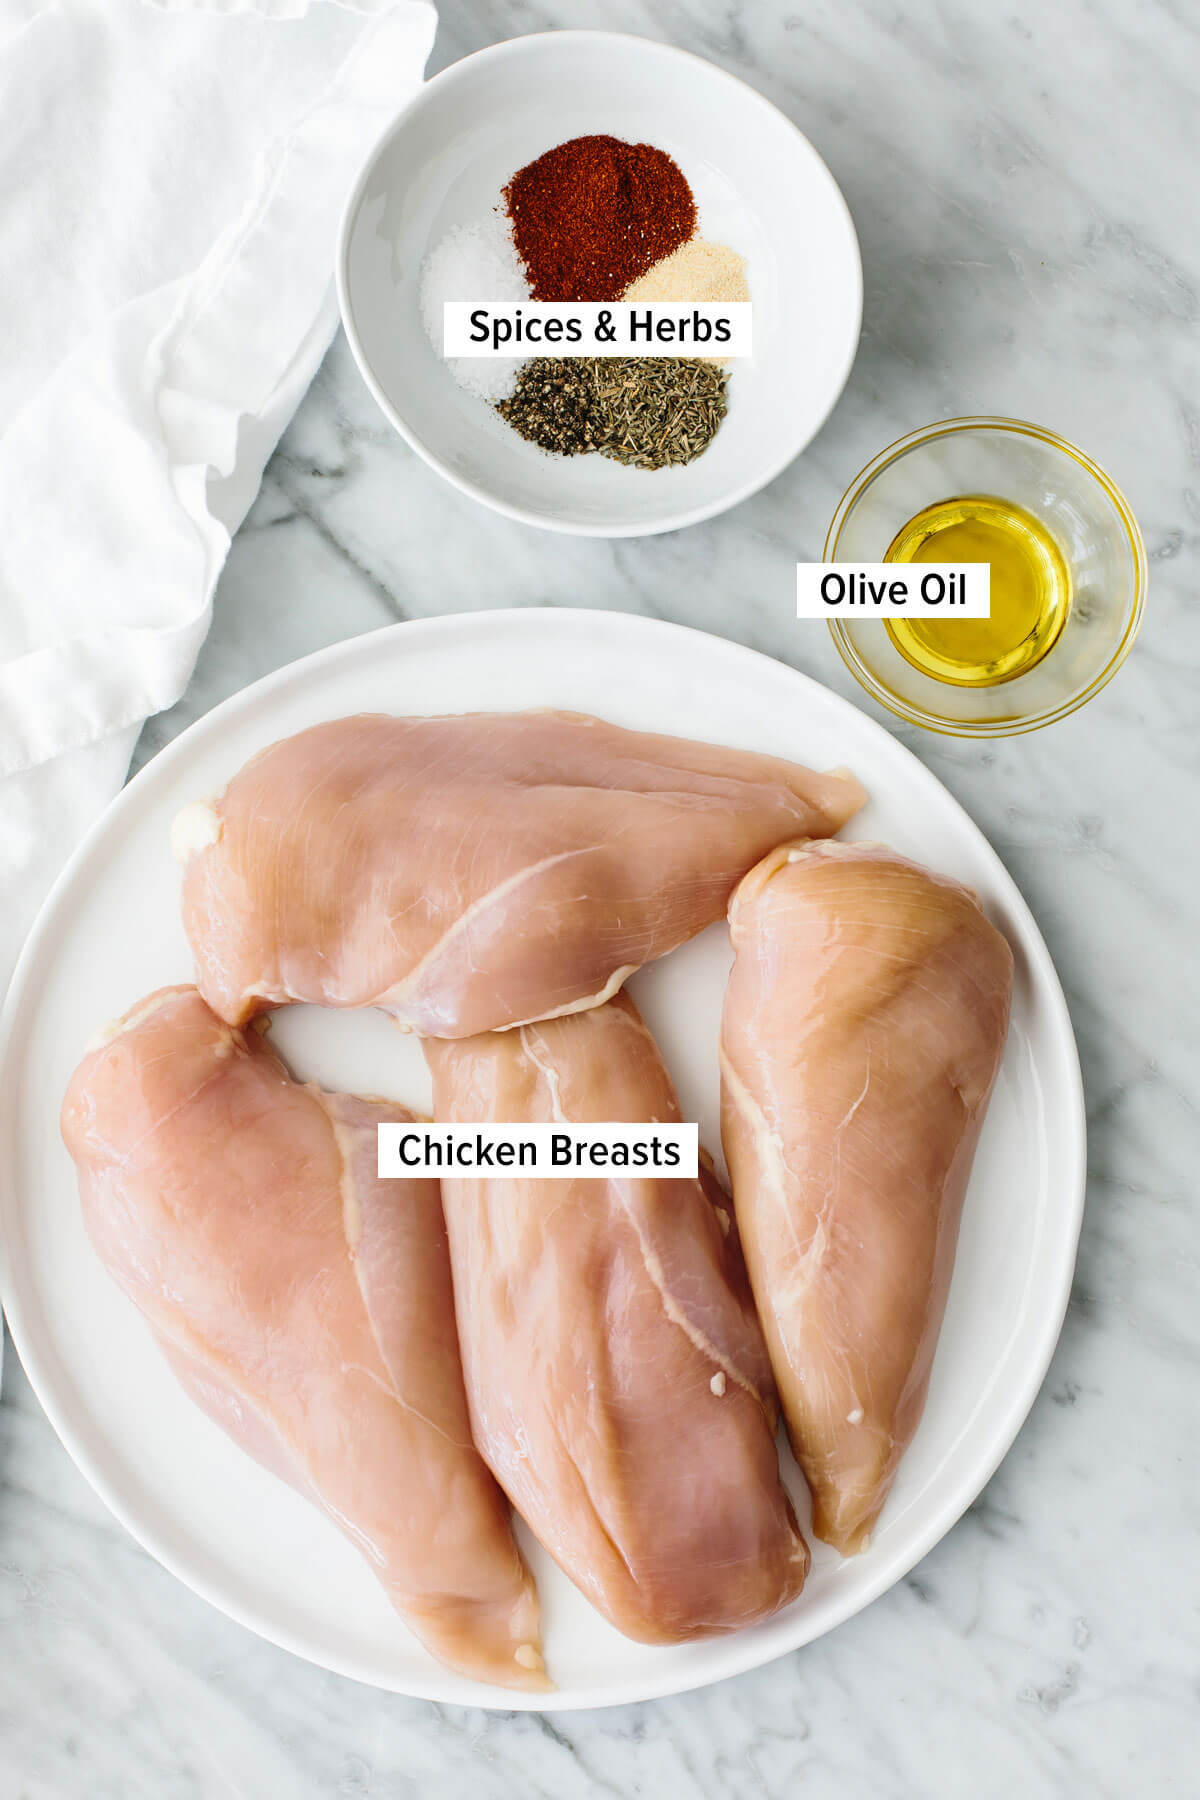 Ingredients for oven baked chicken breasts.